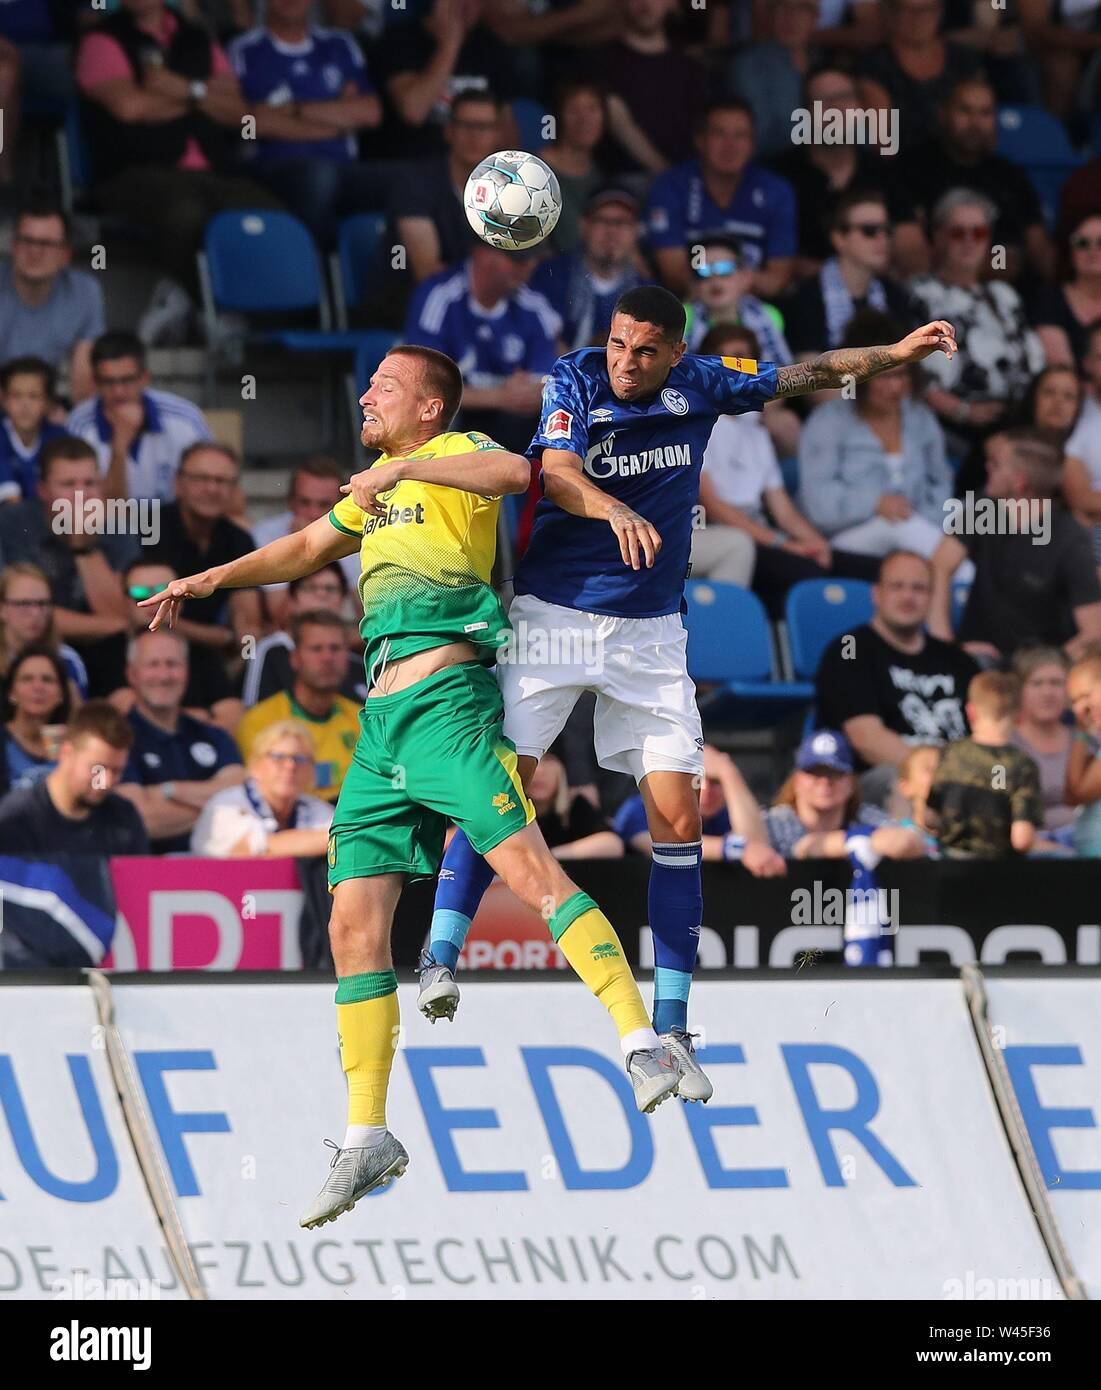 Lotte, Deutschland. 19th July, 2019. firo: 19.07.2019, football, 1.Bundesliga, season 2019/2020, friendly match, FC Schalke 04 - Norwich City Omar MASCARELL, Schalke right duels | usage worldwide Credit: dpa/Alamy Live News - Stock Image